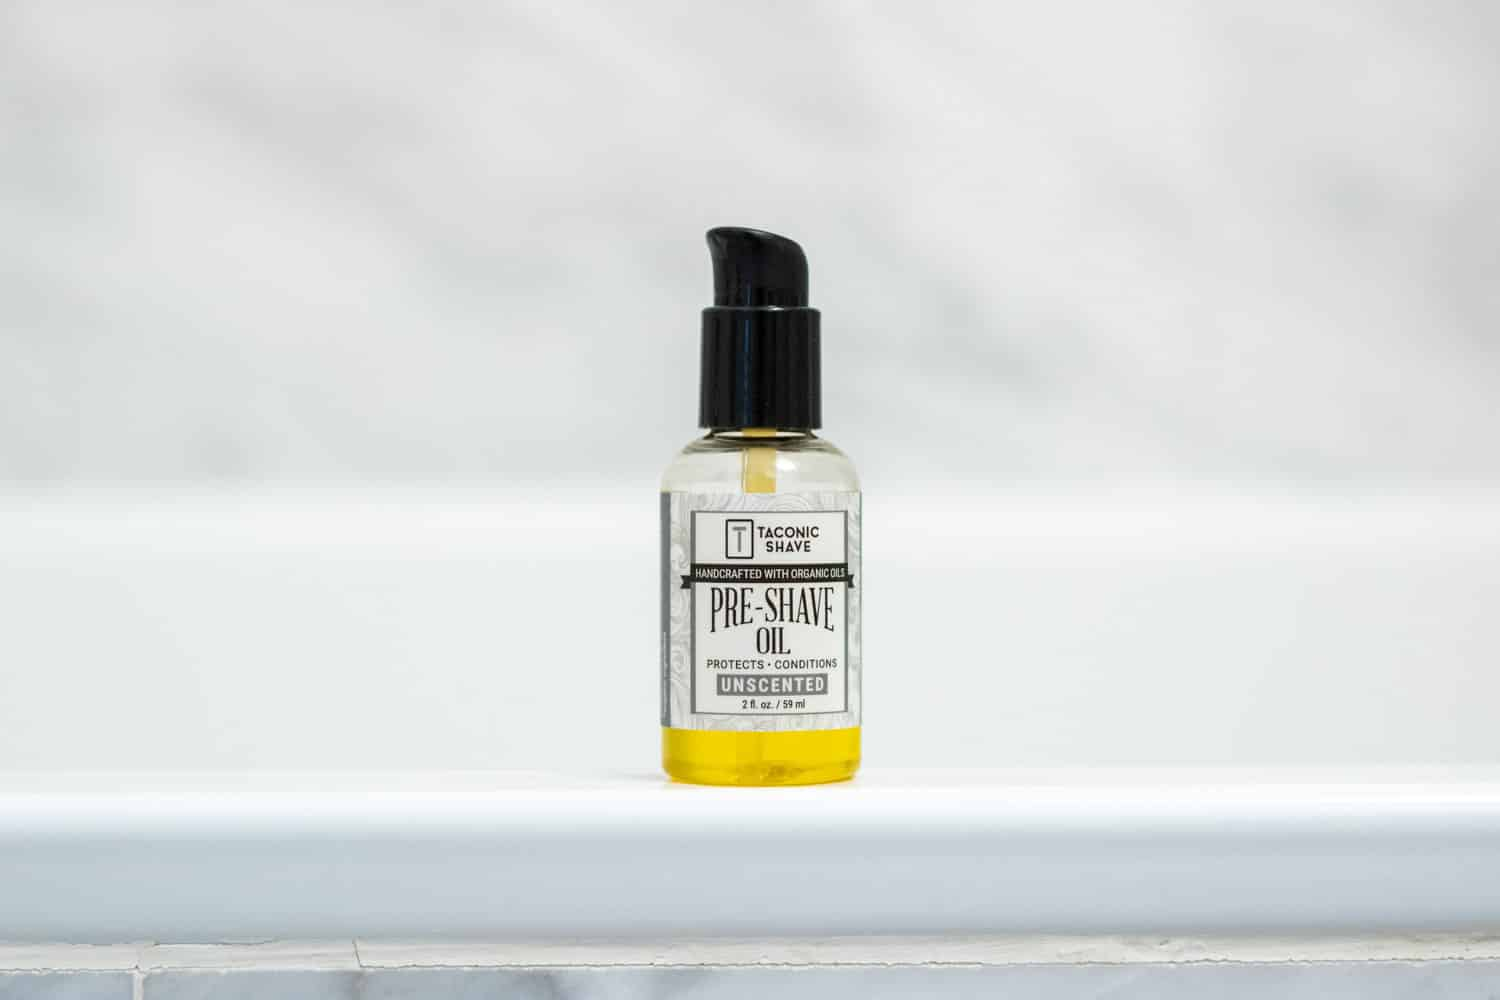 Taconic Shave Pre-Shave Oil Review: Shaving Bliss?